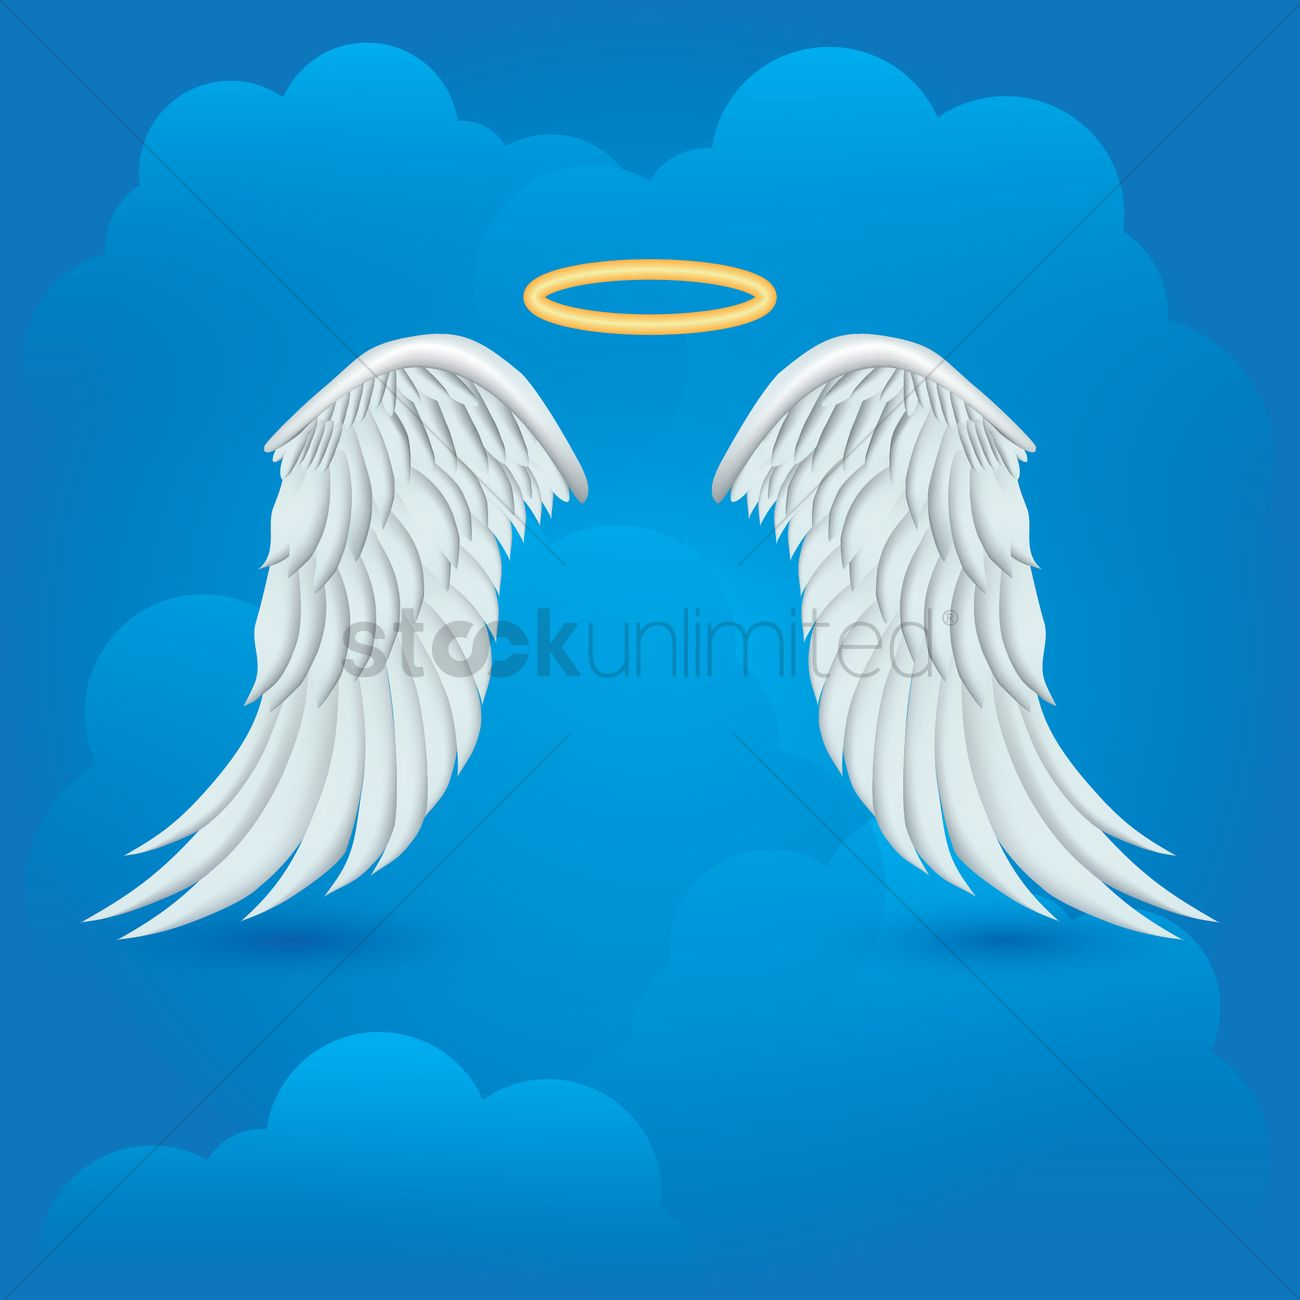 Angel Wings With Halo On Cloud Background Vector Image